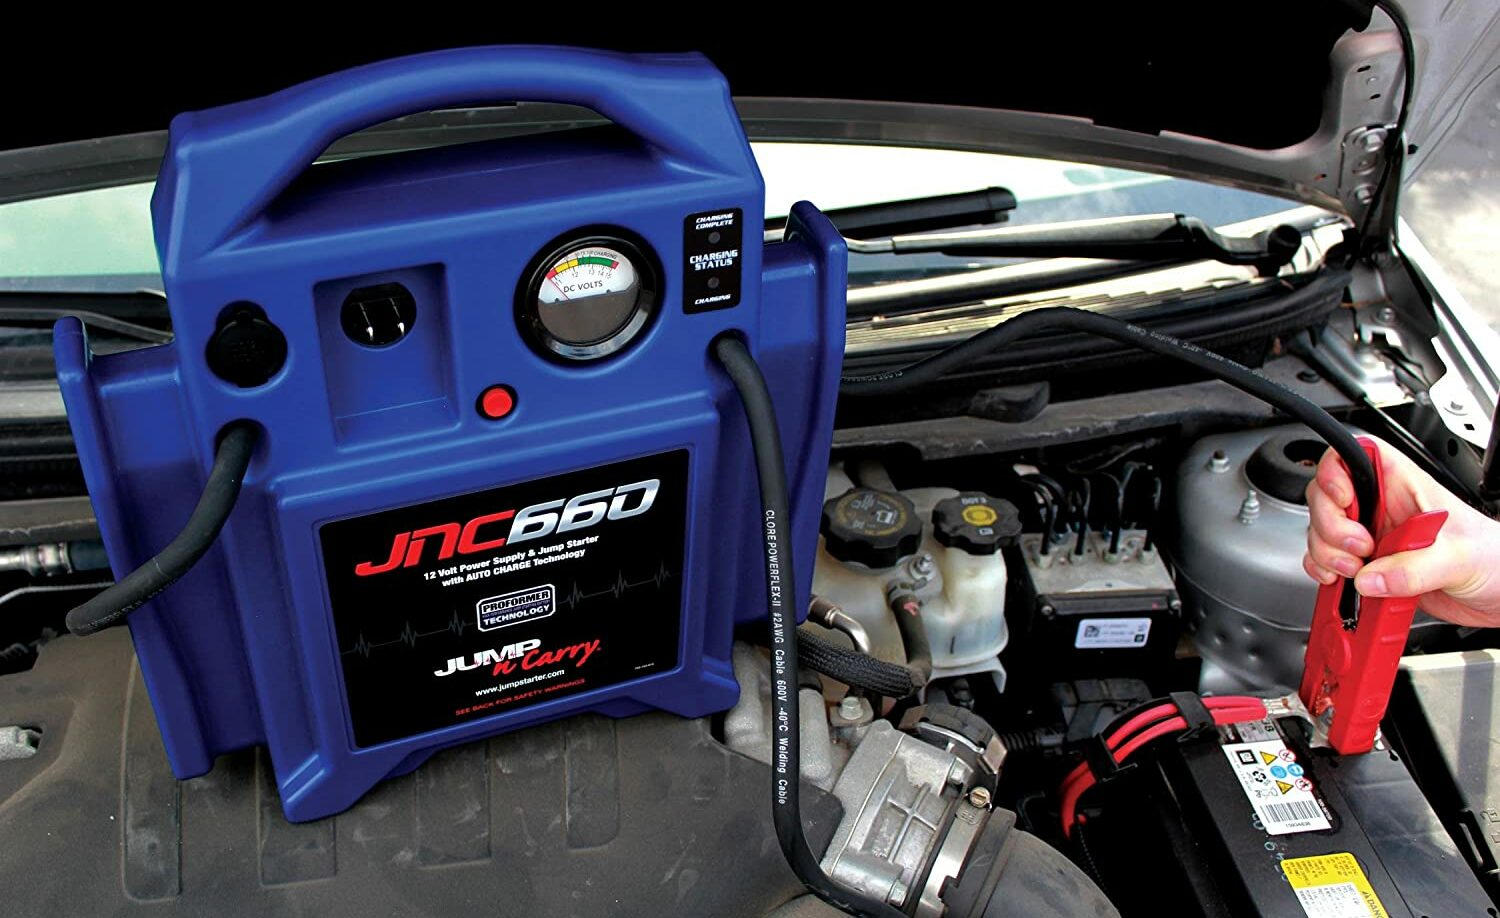 What to Look for in a Car Battery Charger